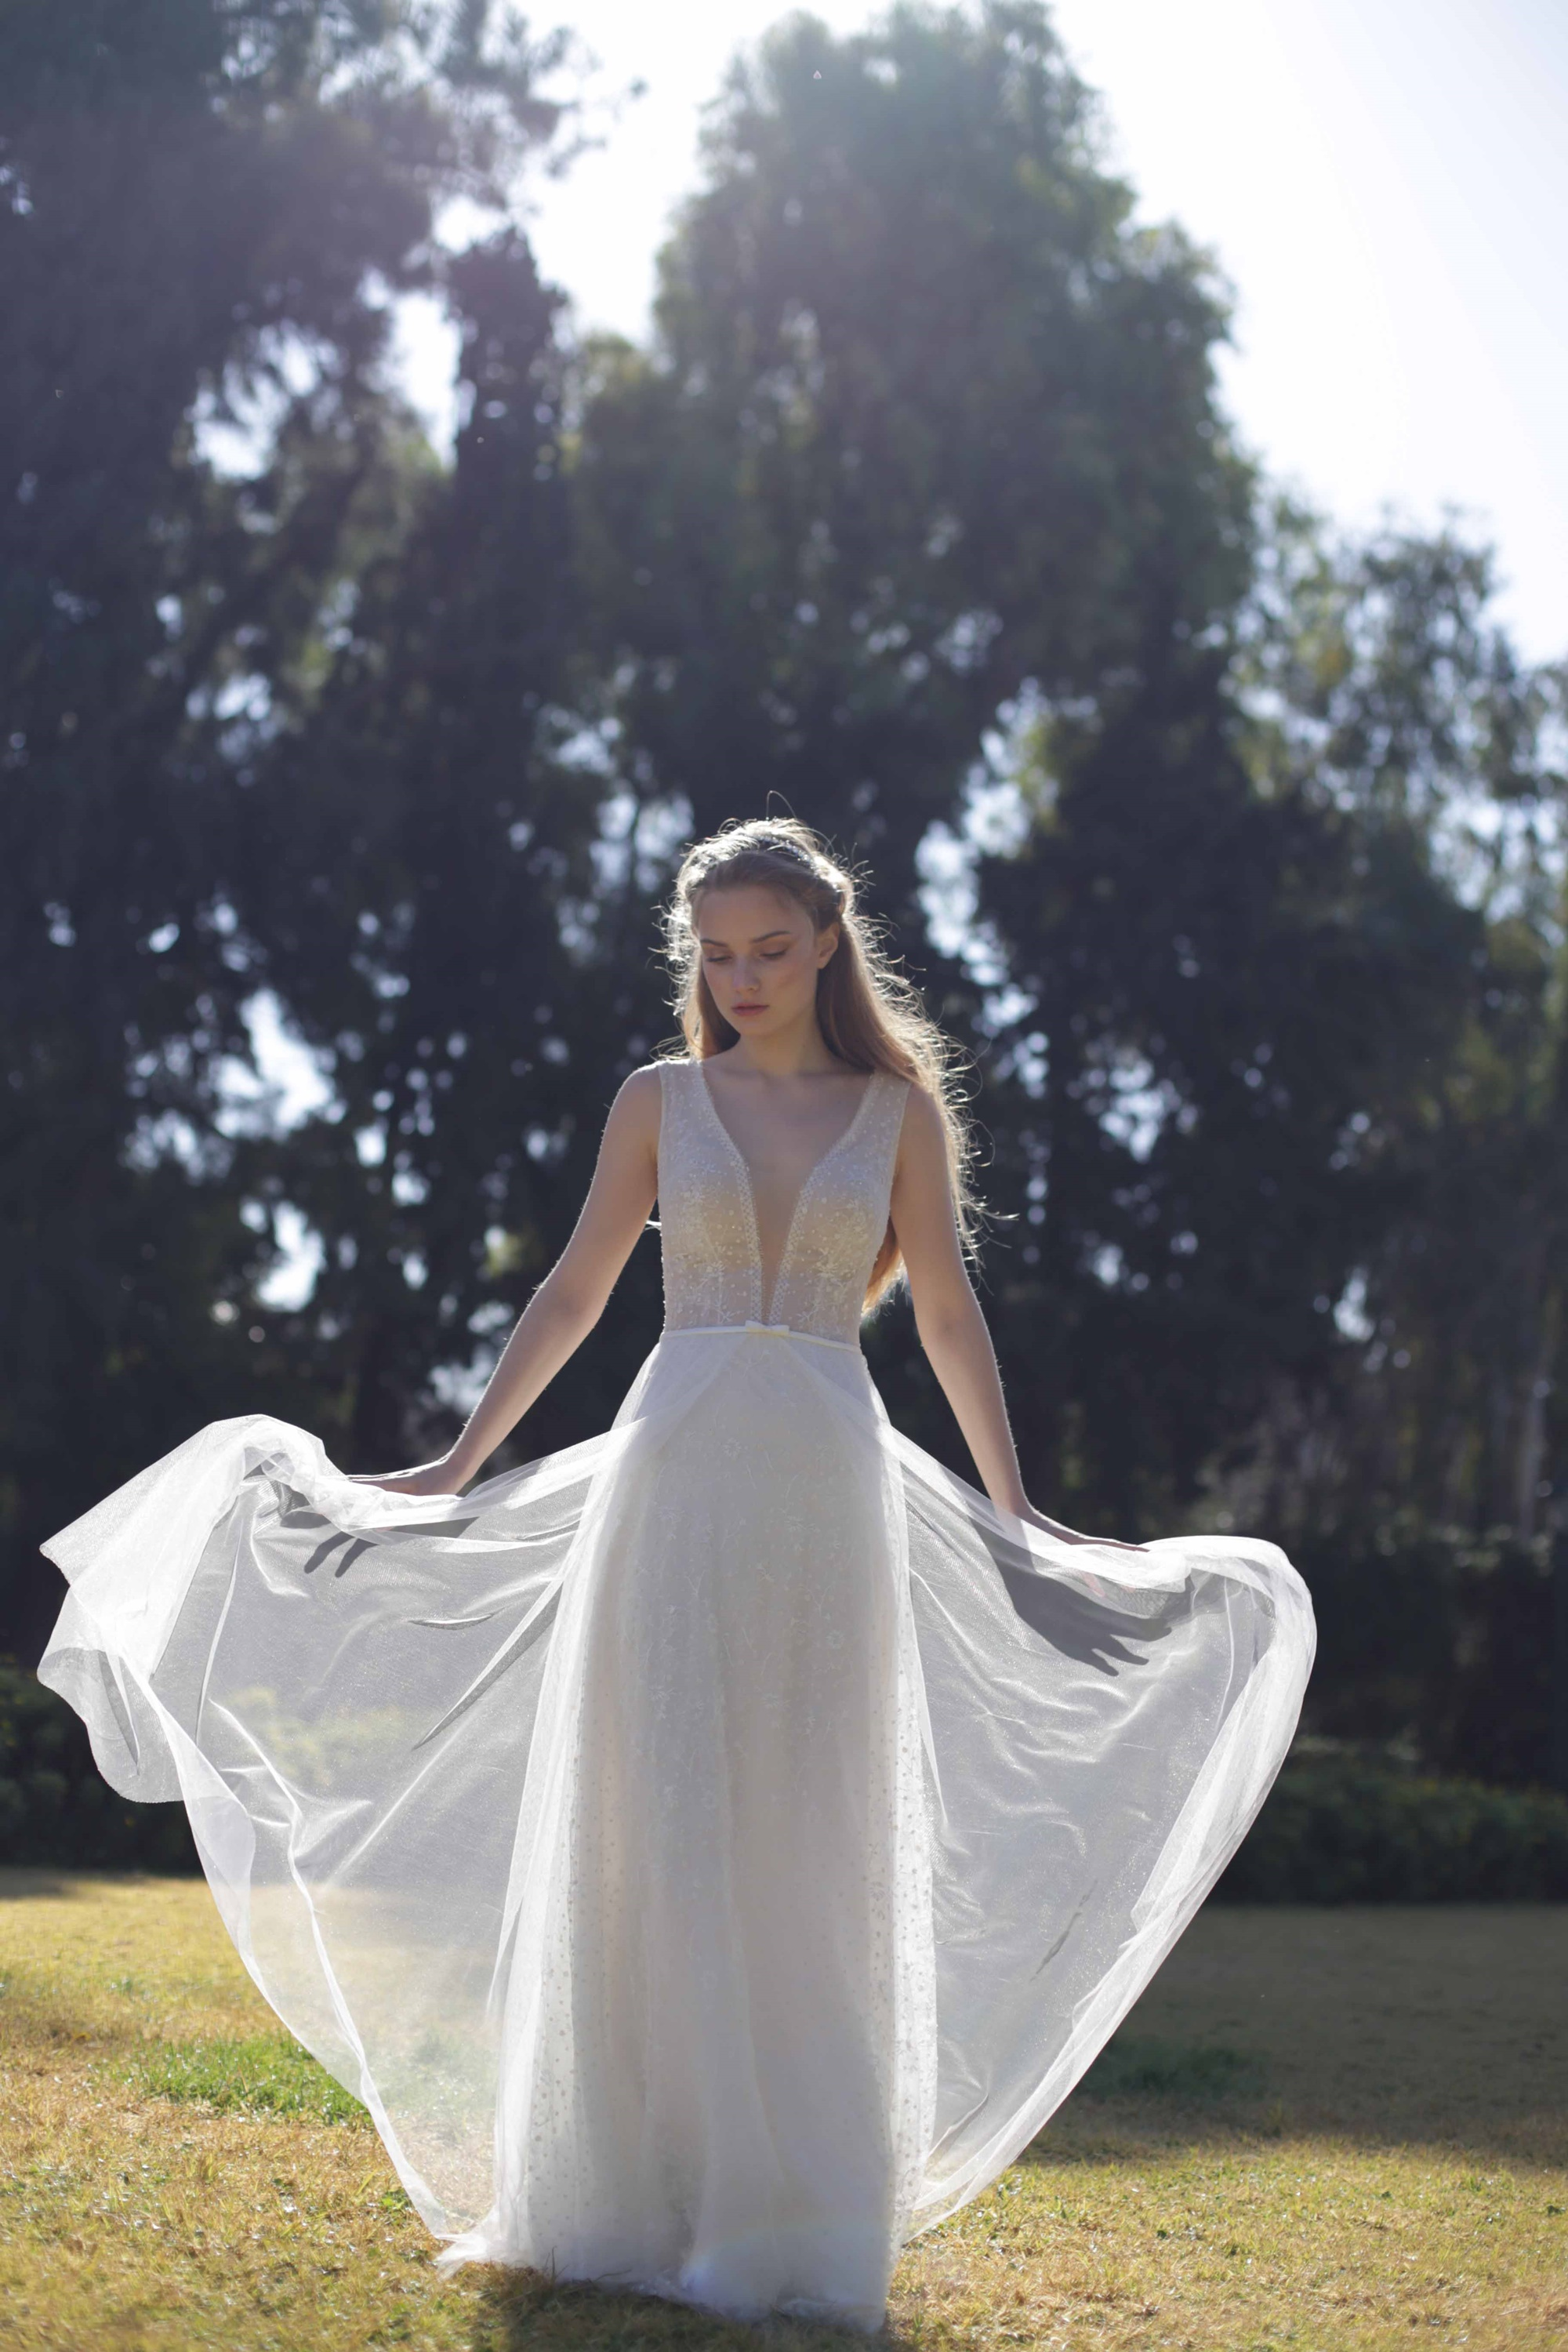 Stunning romantic wedding dresses by Eleni Kollarou